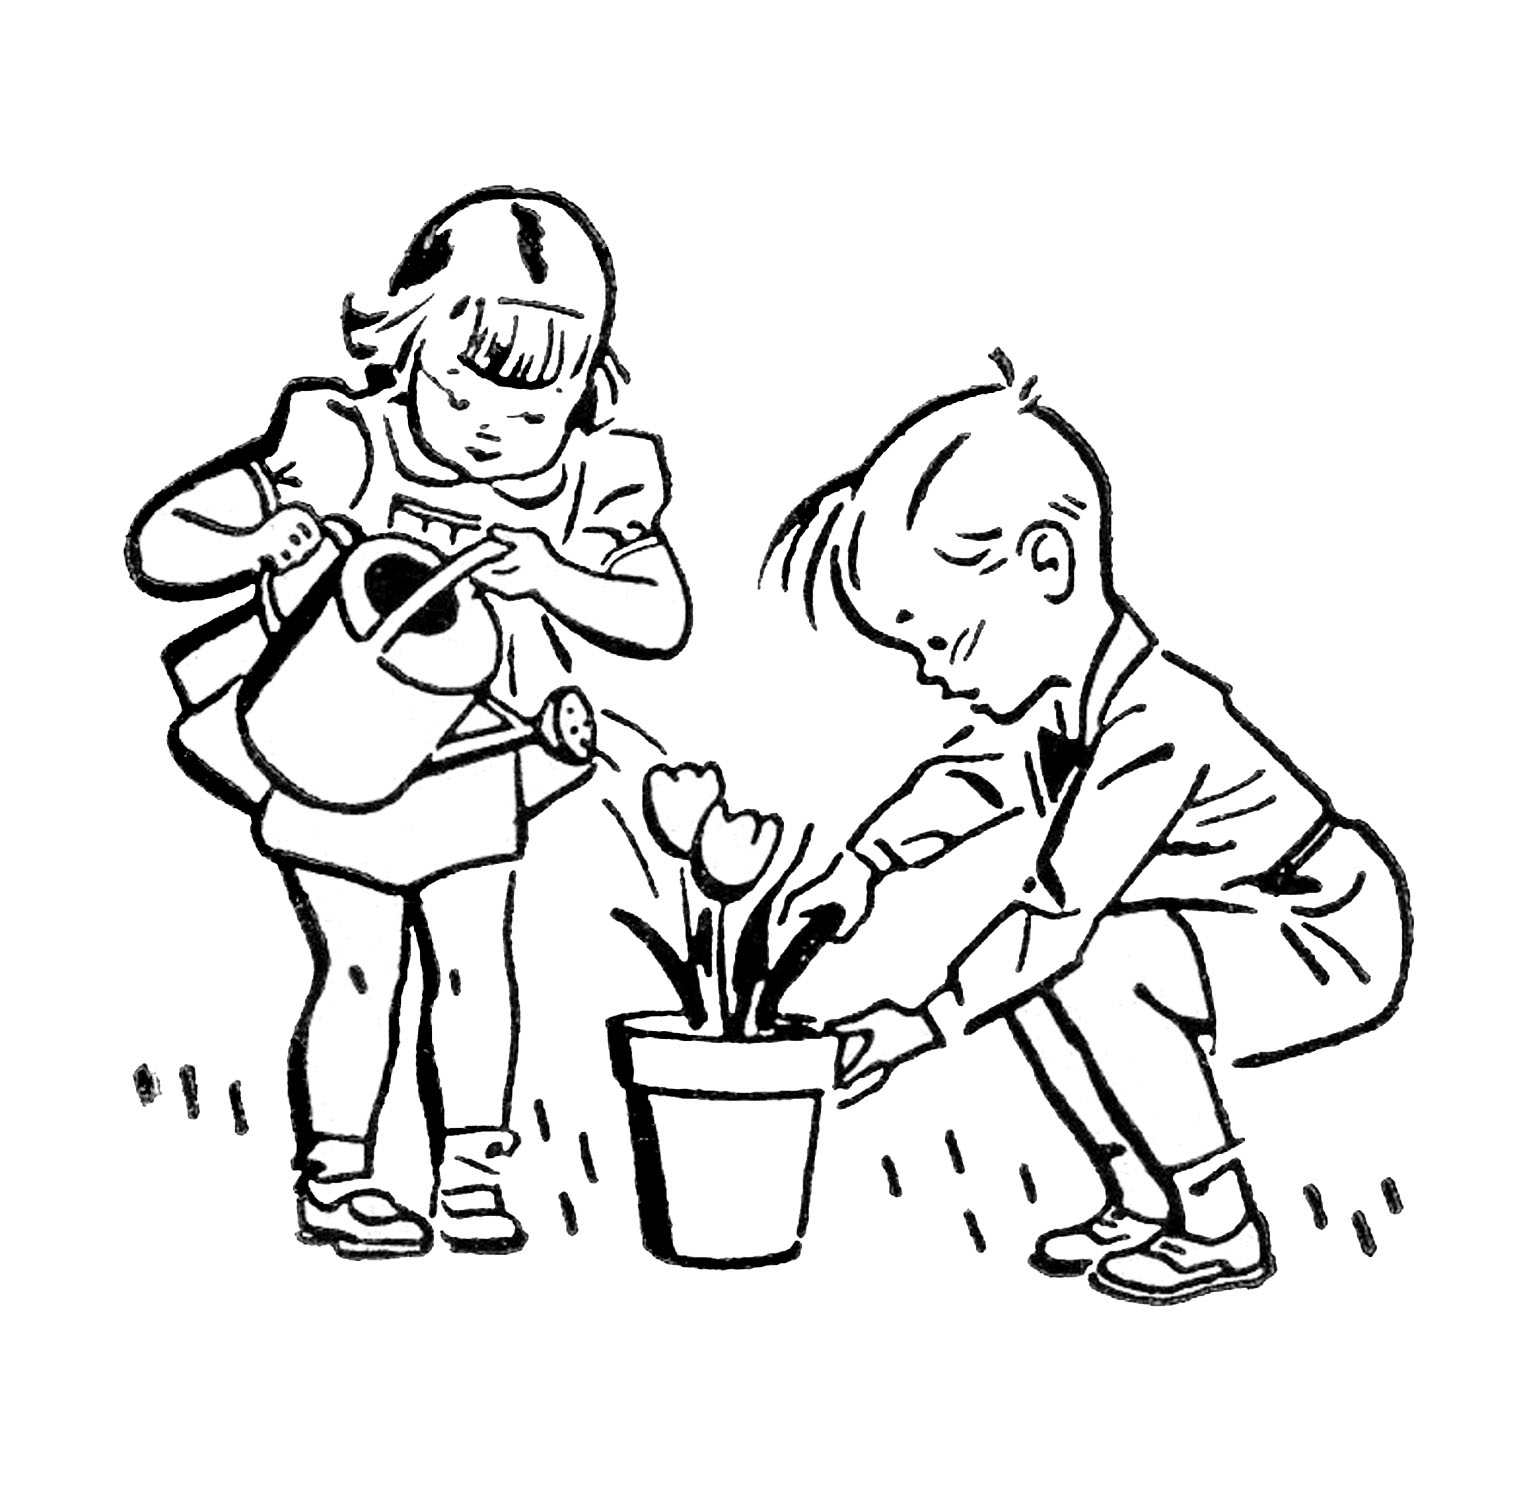 Children doing chores clipart black and white clip royalty free download Retro Images - Cute Kids - Gardening - Fishing - Playing - The ... clip royalty free download